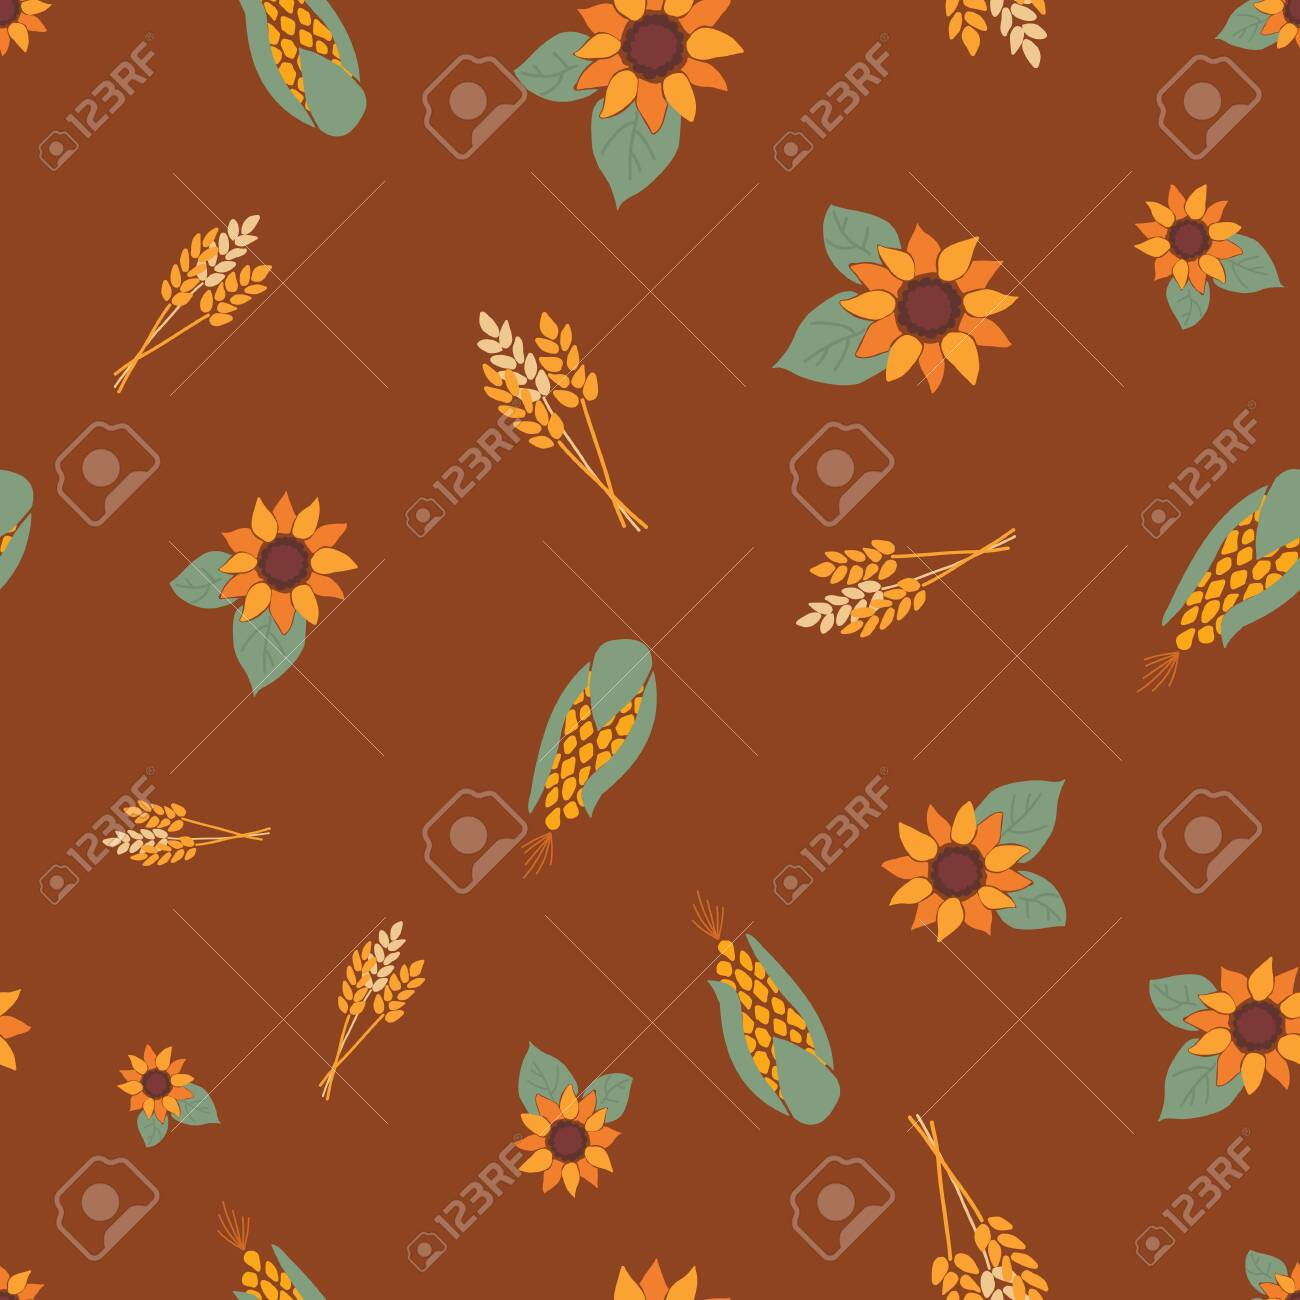 Corn Crop And Sunflowers On Brown Background Seamless Repeating Royalty Free Cliparts Vectors And Stock Illustration Image 133198857